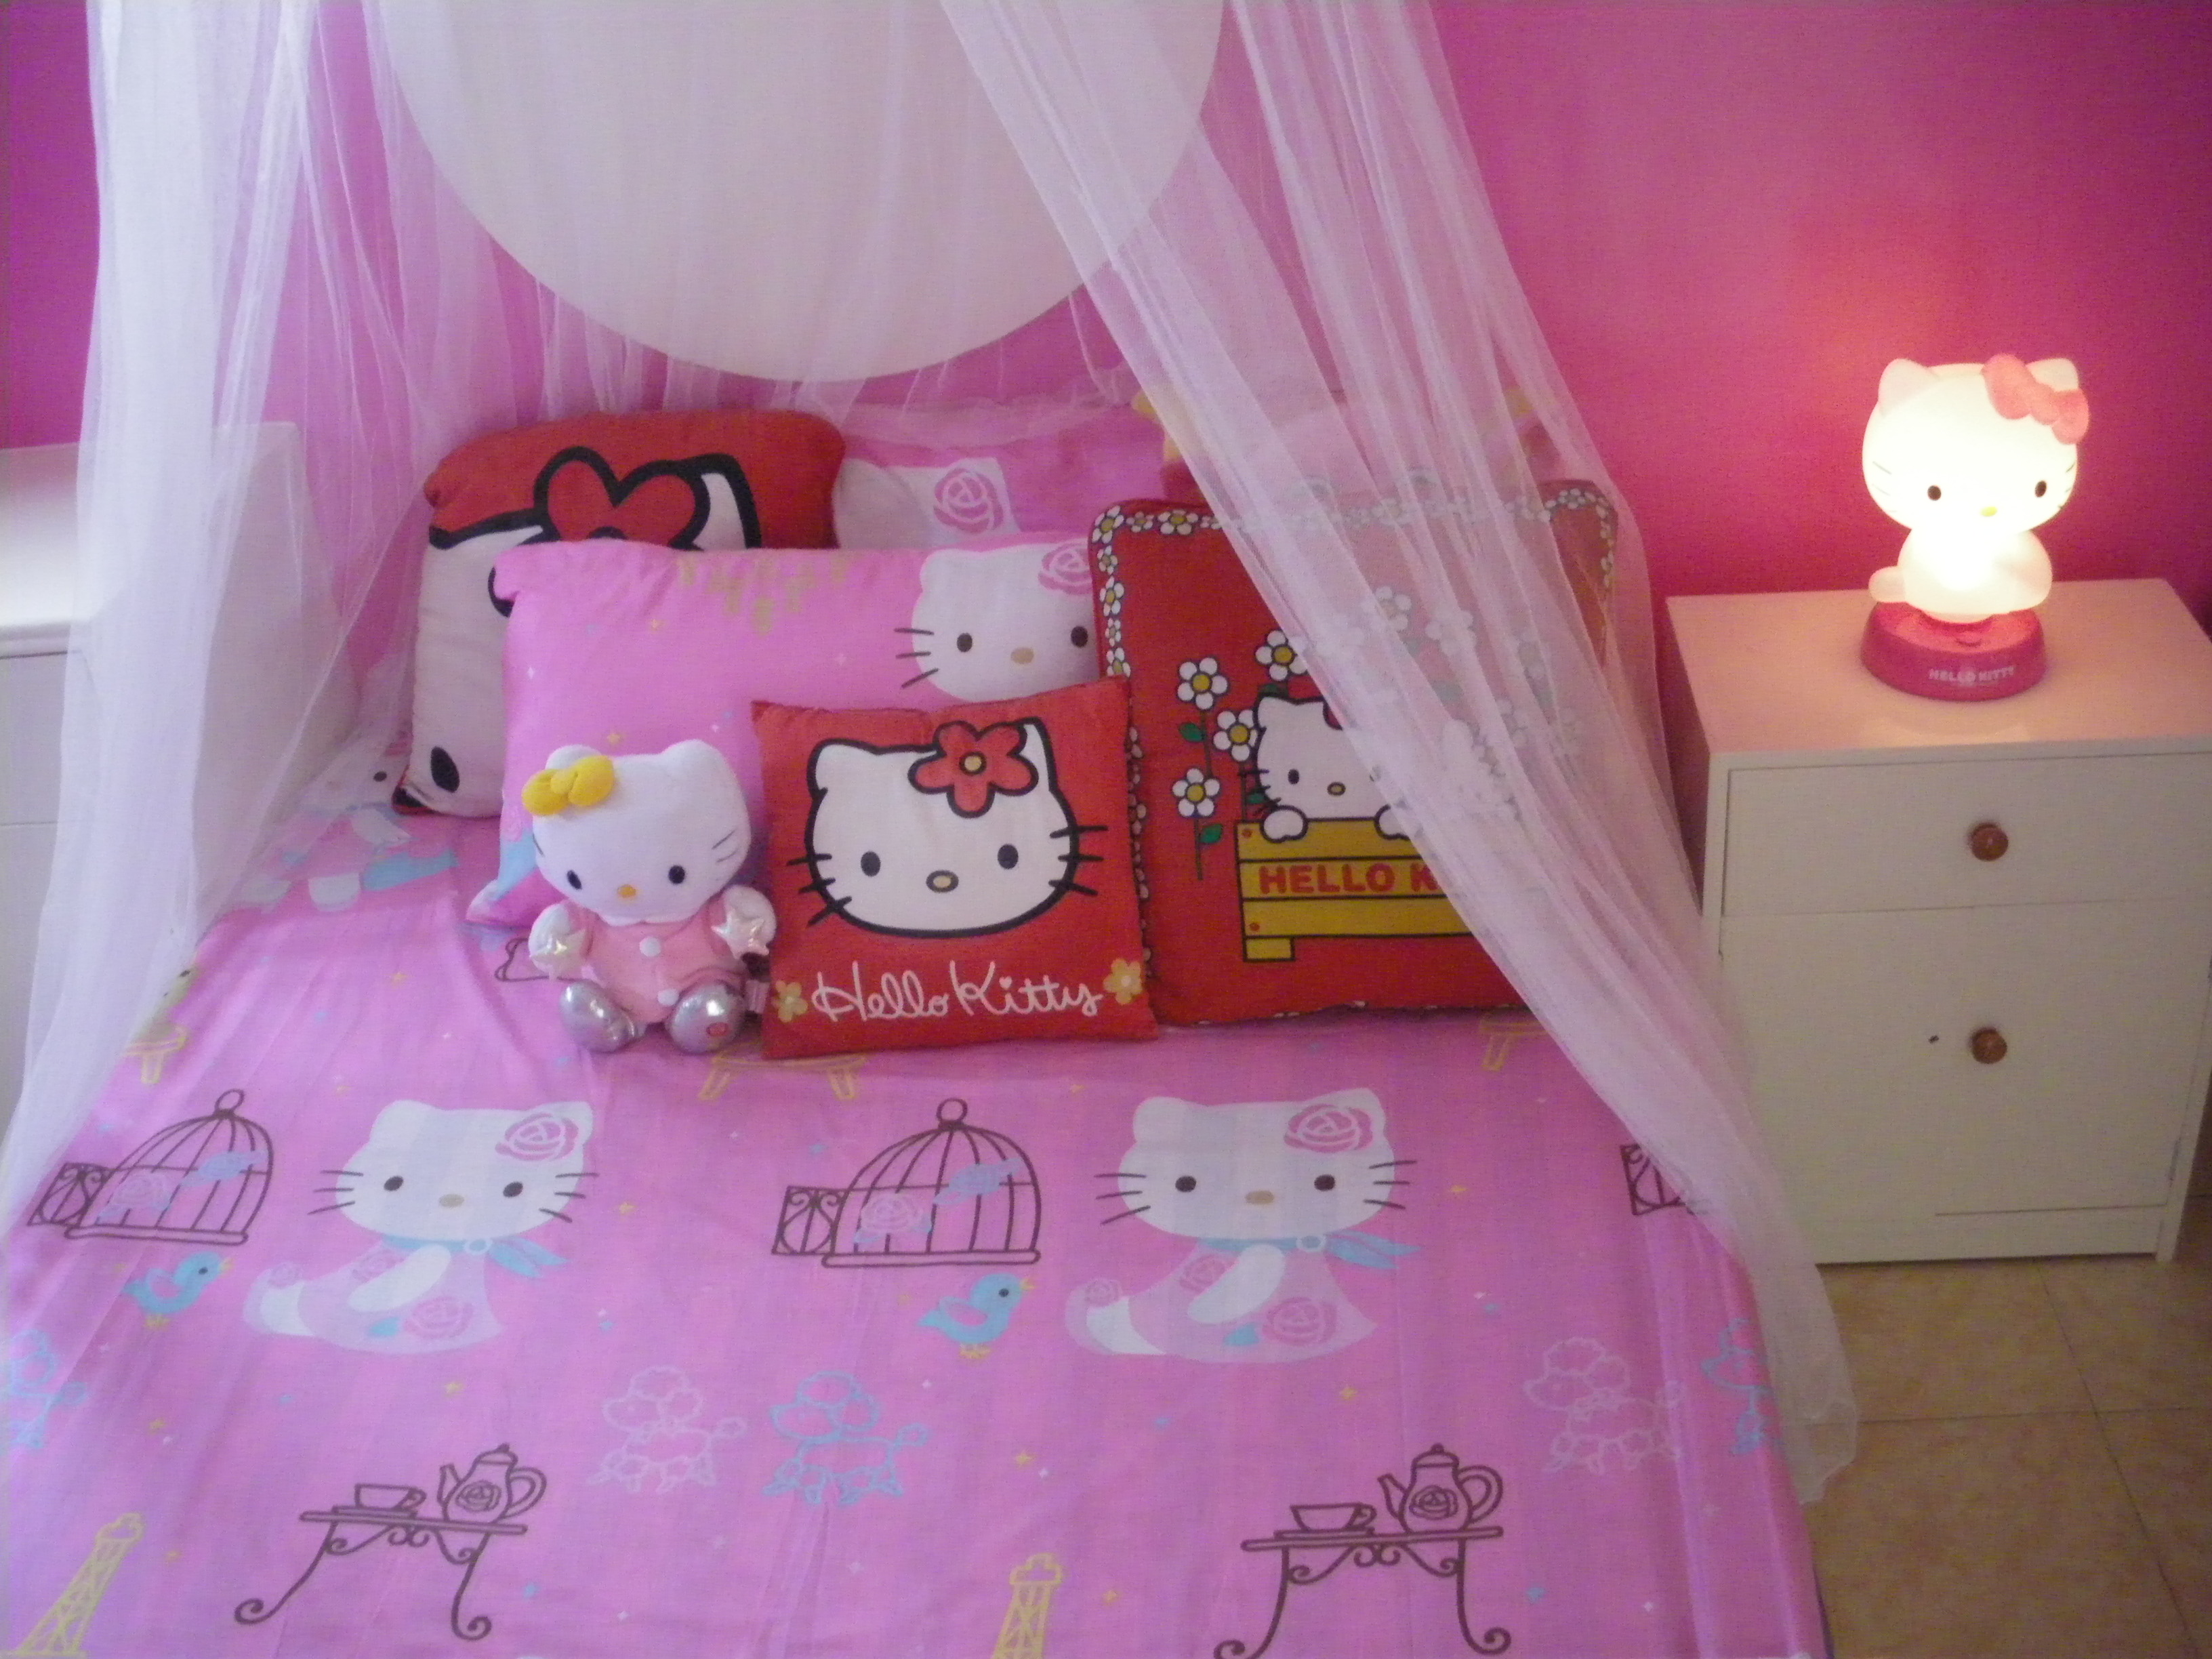 Pink Room | Hello Kitty Hell